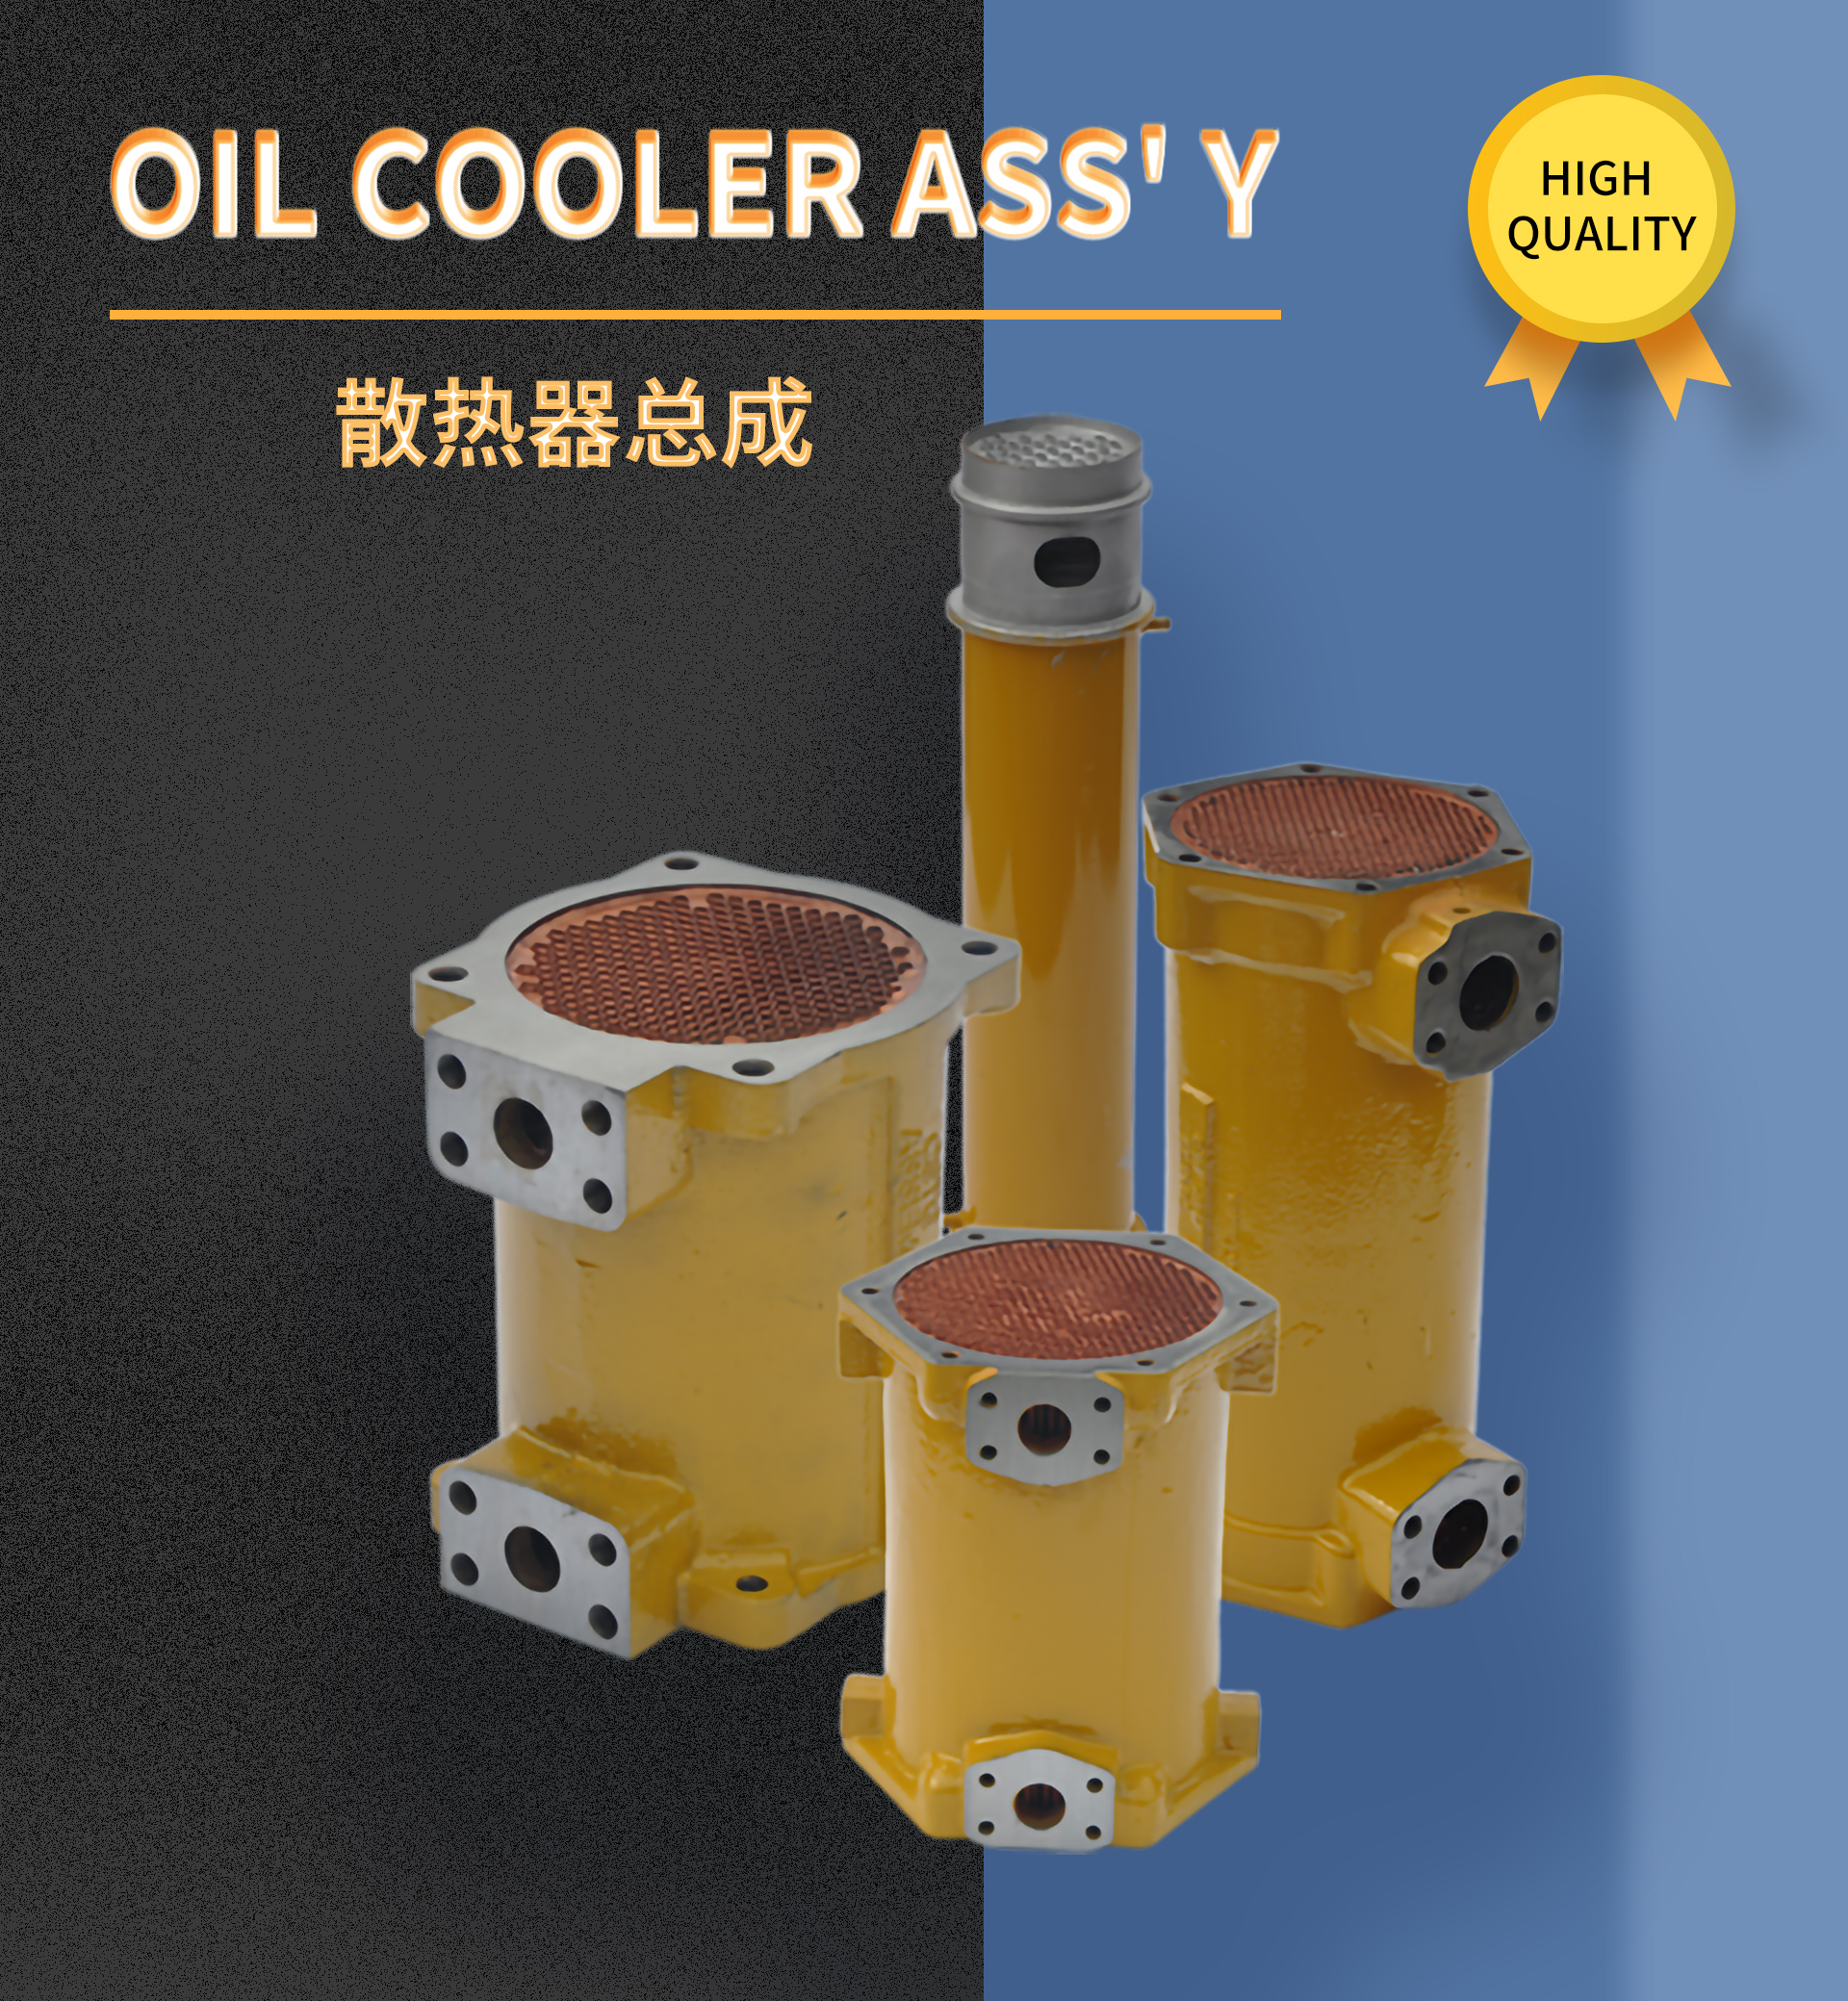 Construction Machinery Parts 4W6047 7C0145 Hydraulic Oil Cooler Radiator for 3406 excavator dozer